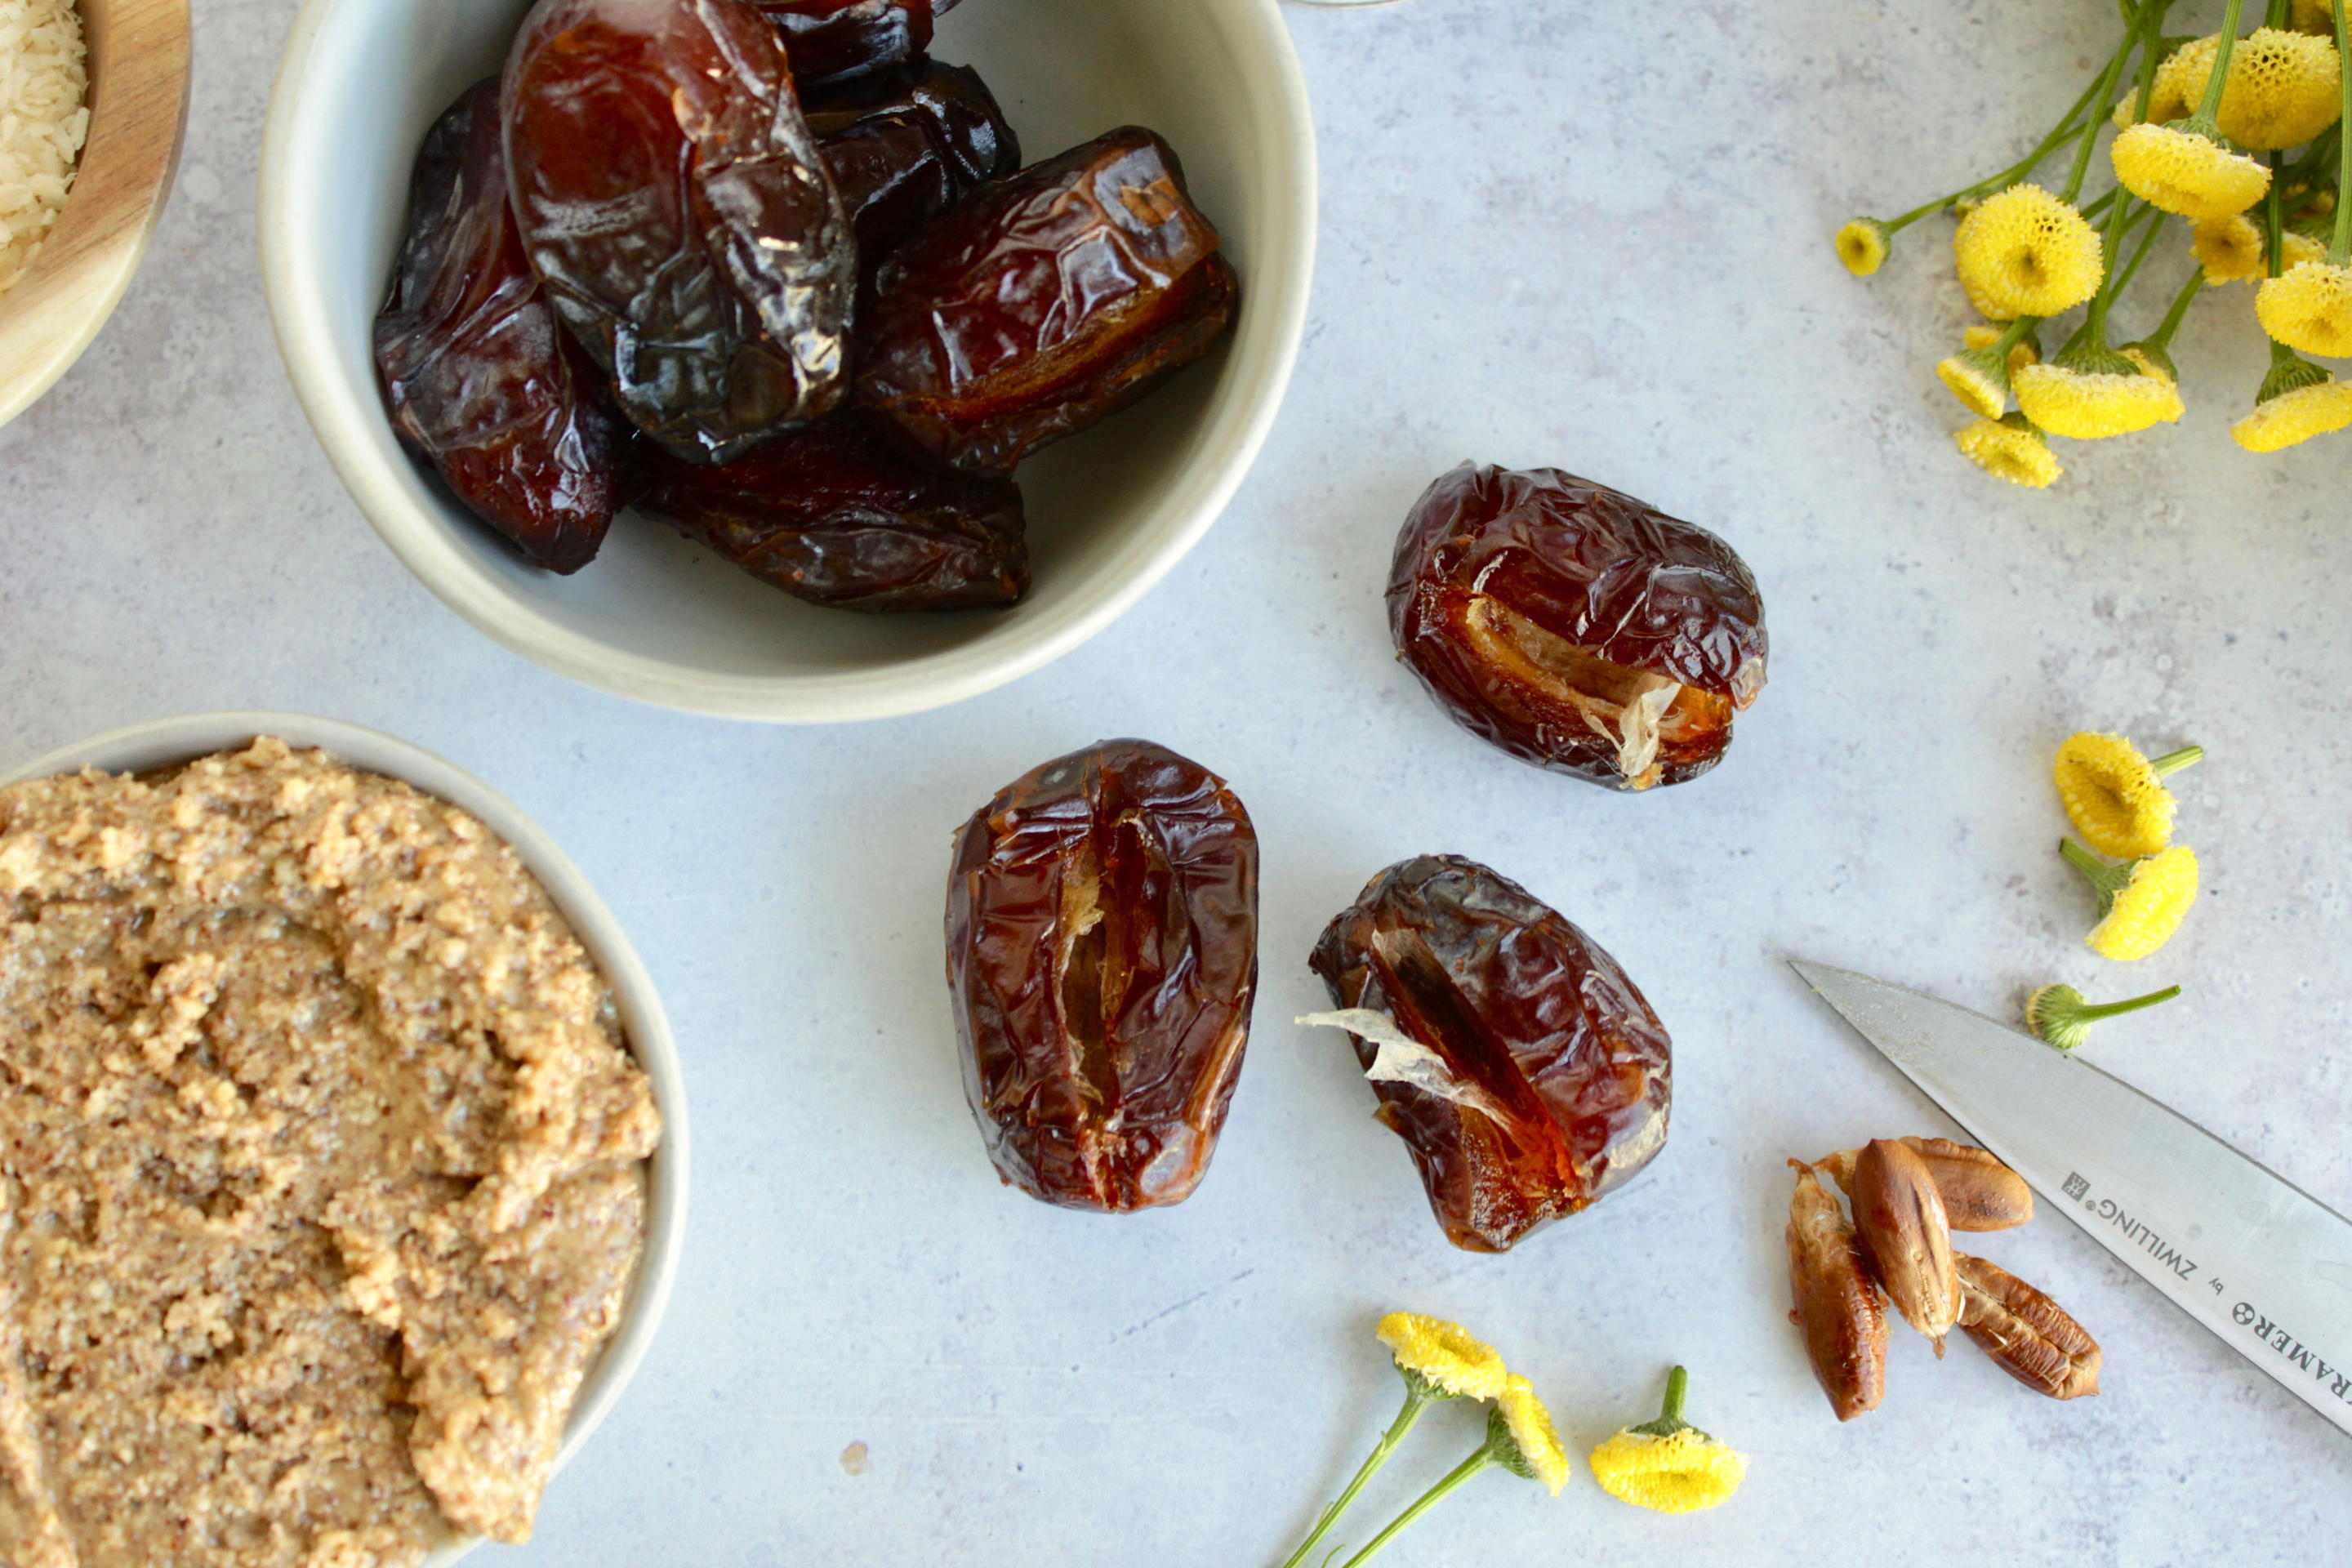 Delectable dates